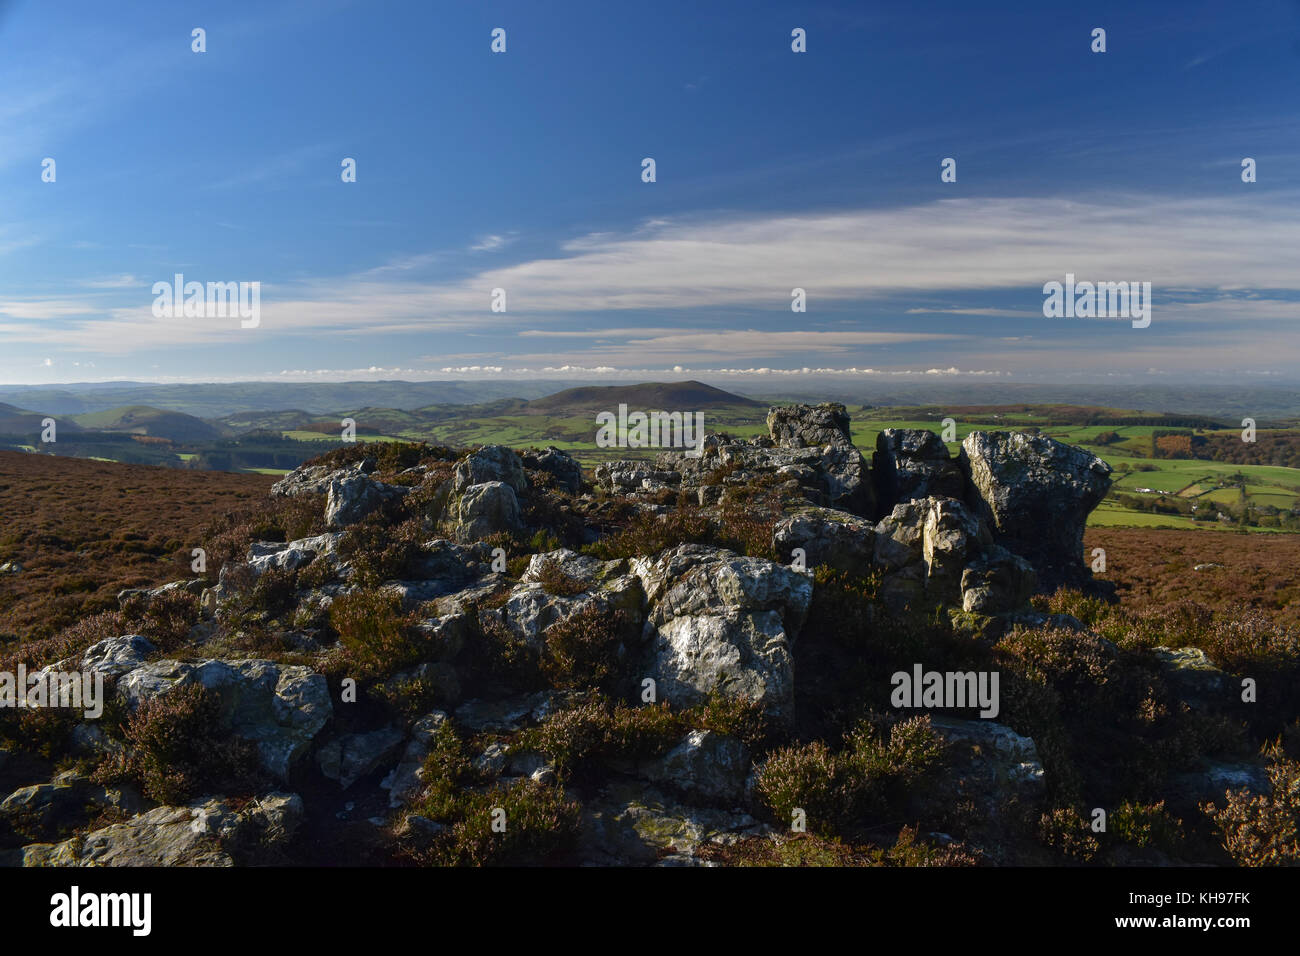 Rock formations on the Stiperstones in Shropshire, an area of outstanding natural beauty. - Stock Image